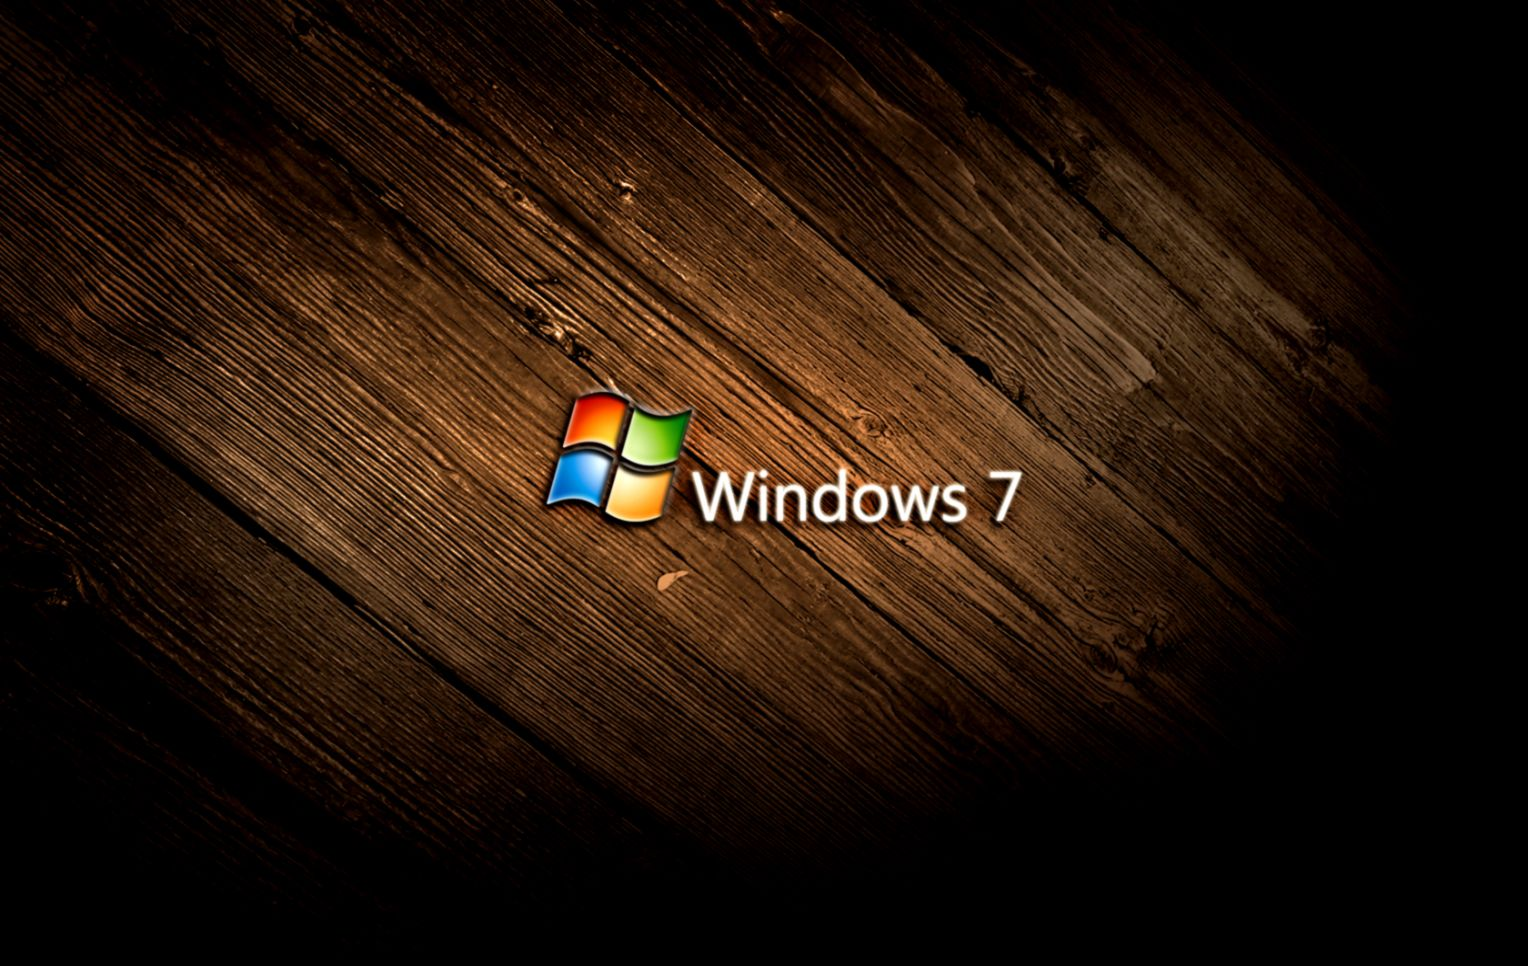 hd wallpapers for windows 7 1